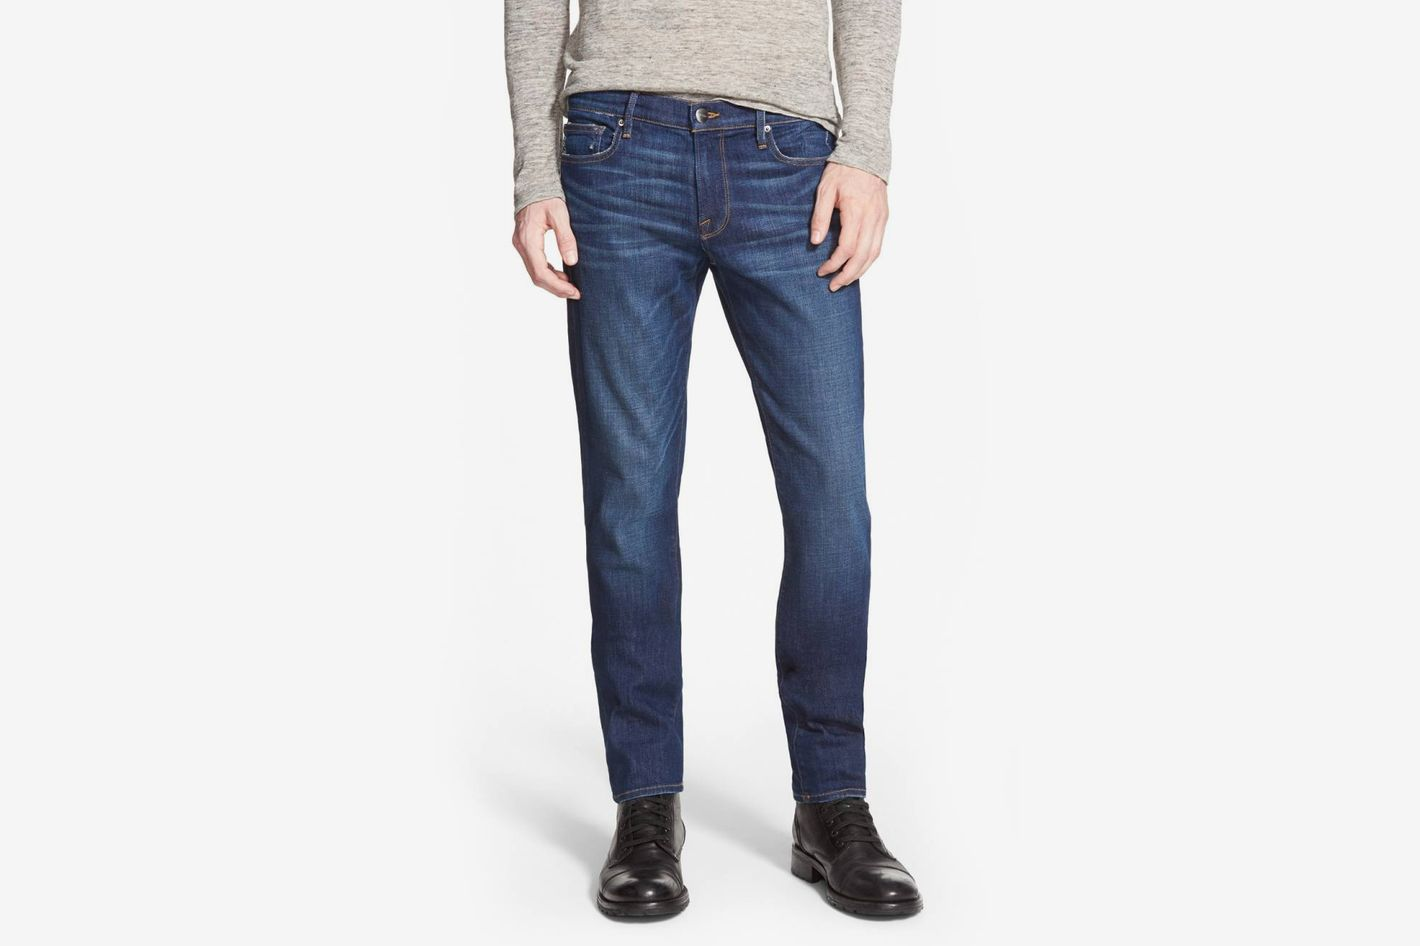 ac17a12e85b The 11 Best Pairs of High-Rise Jeans for Men